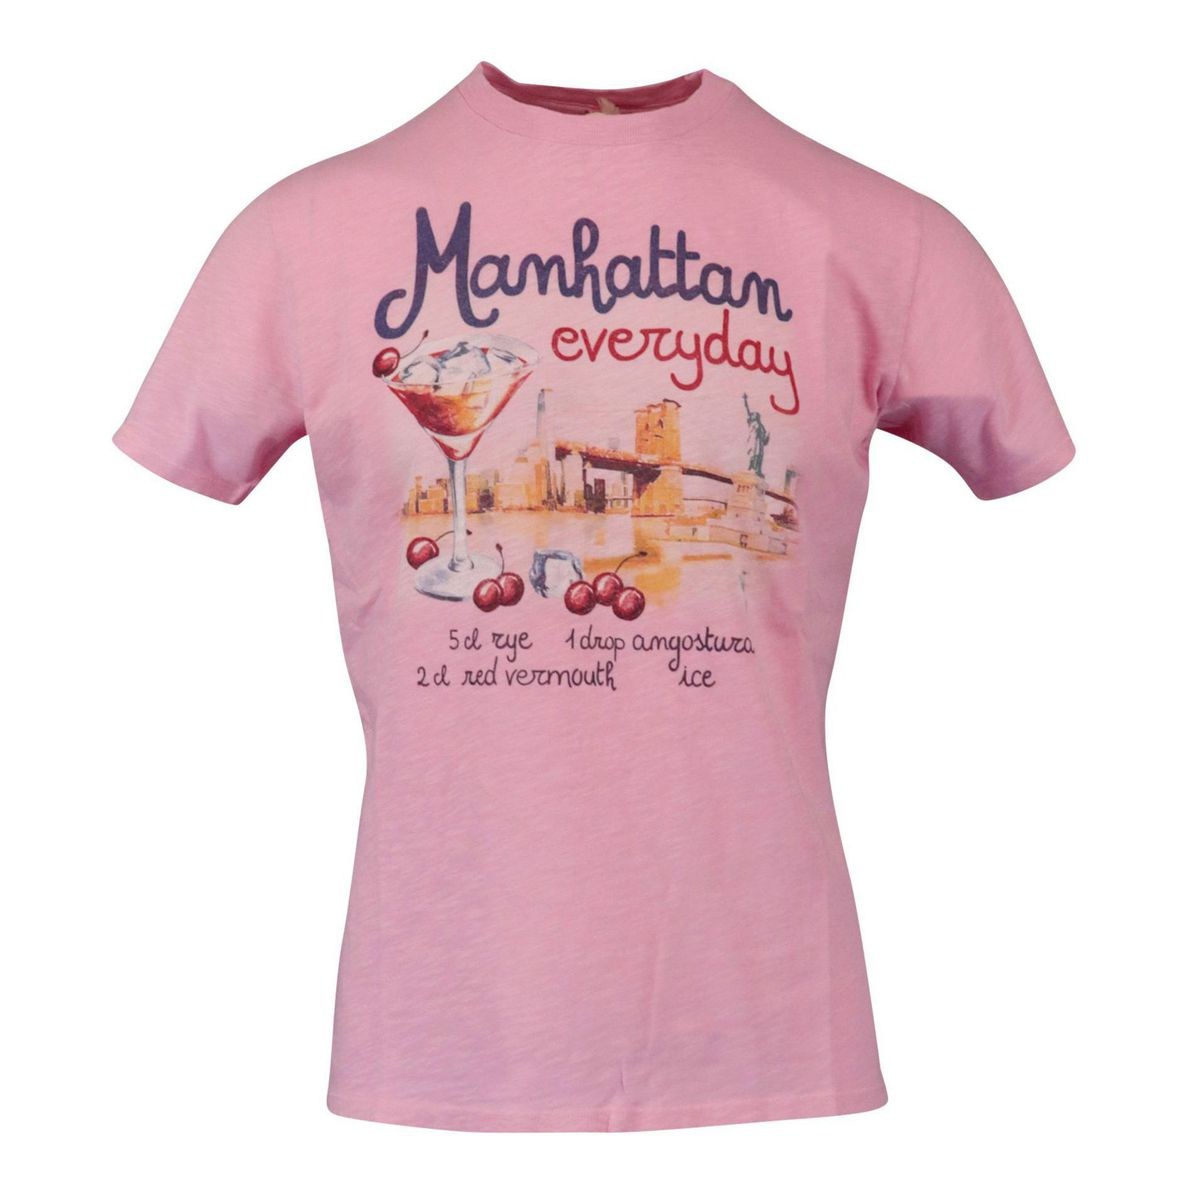 Manhattan Drink 21 cotton t-shirt Pink MC2 Saint Barth